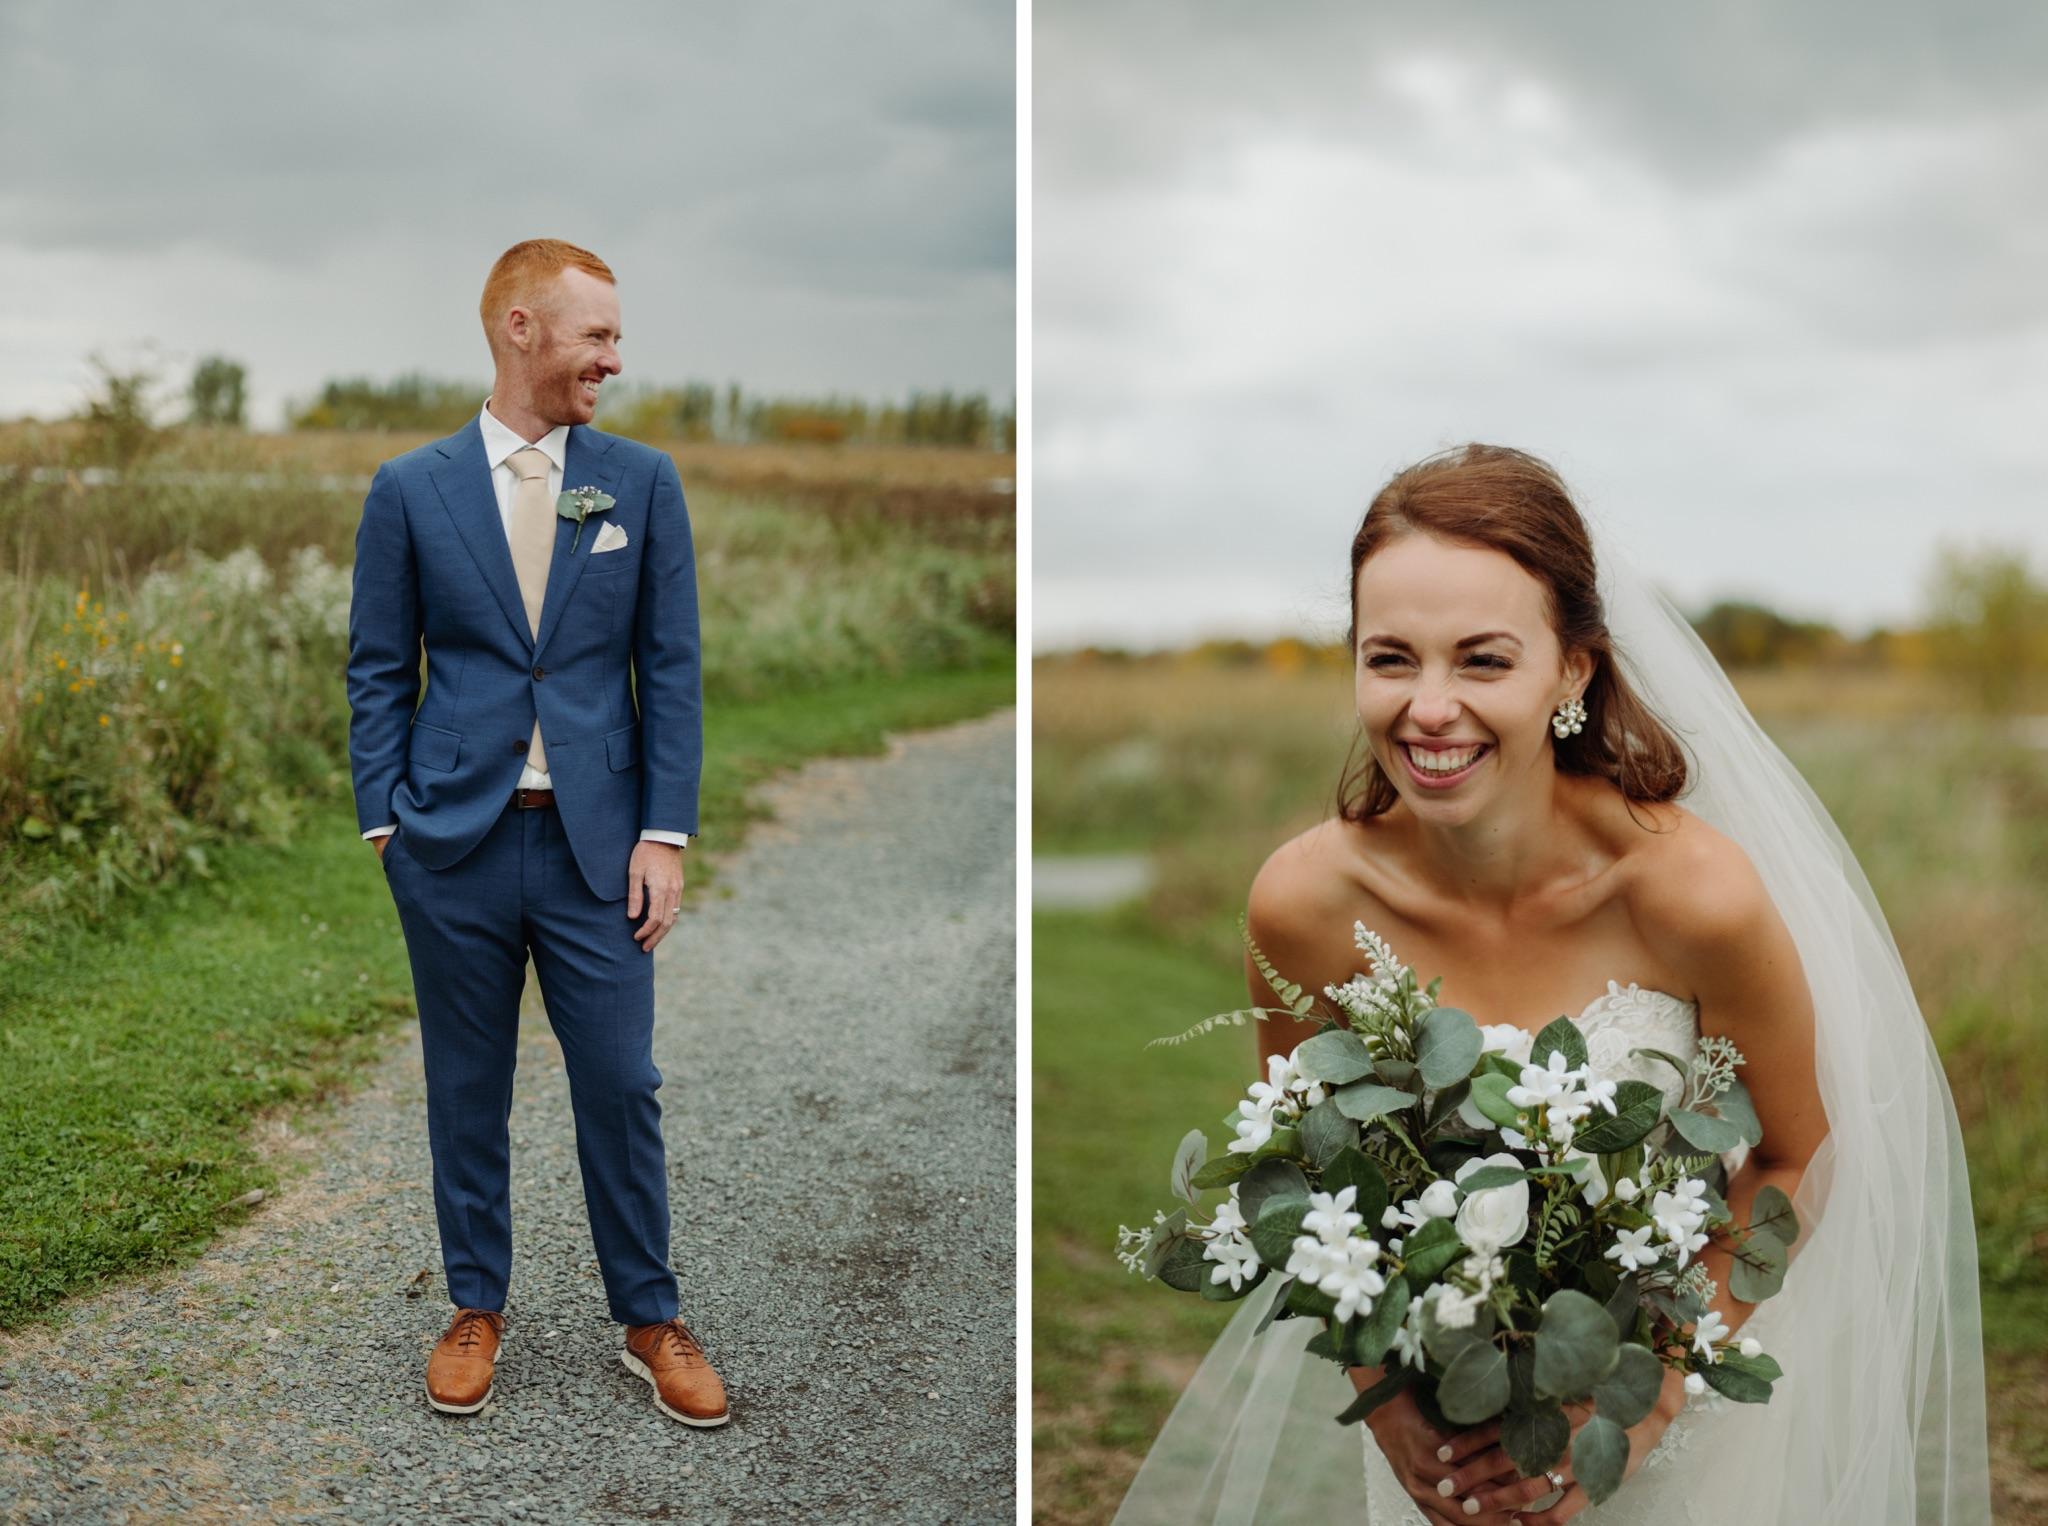 individual photos of bride standing and holding flowers and groom standing